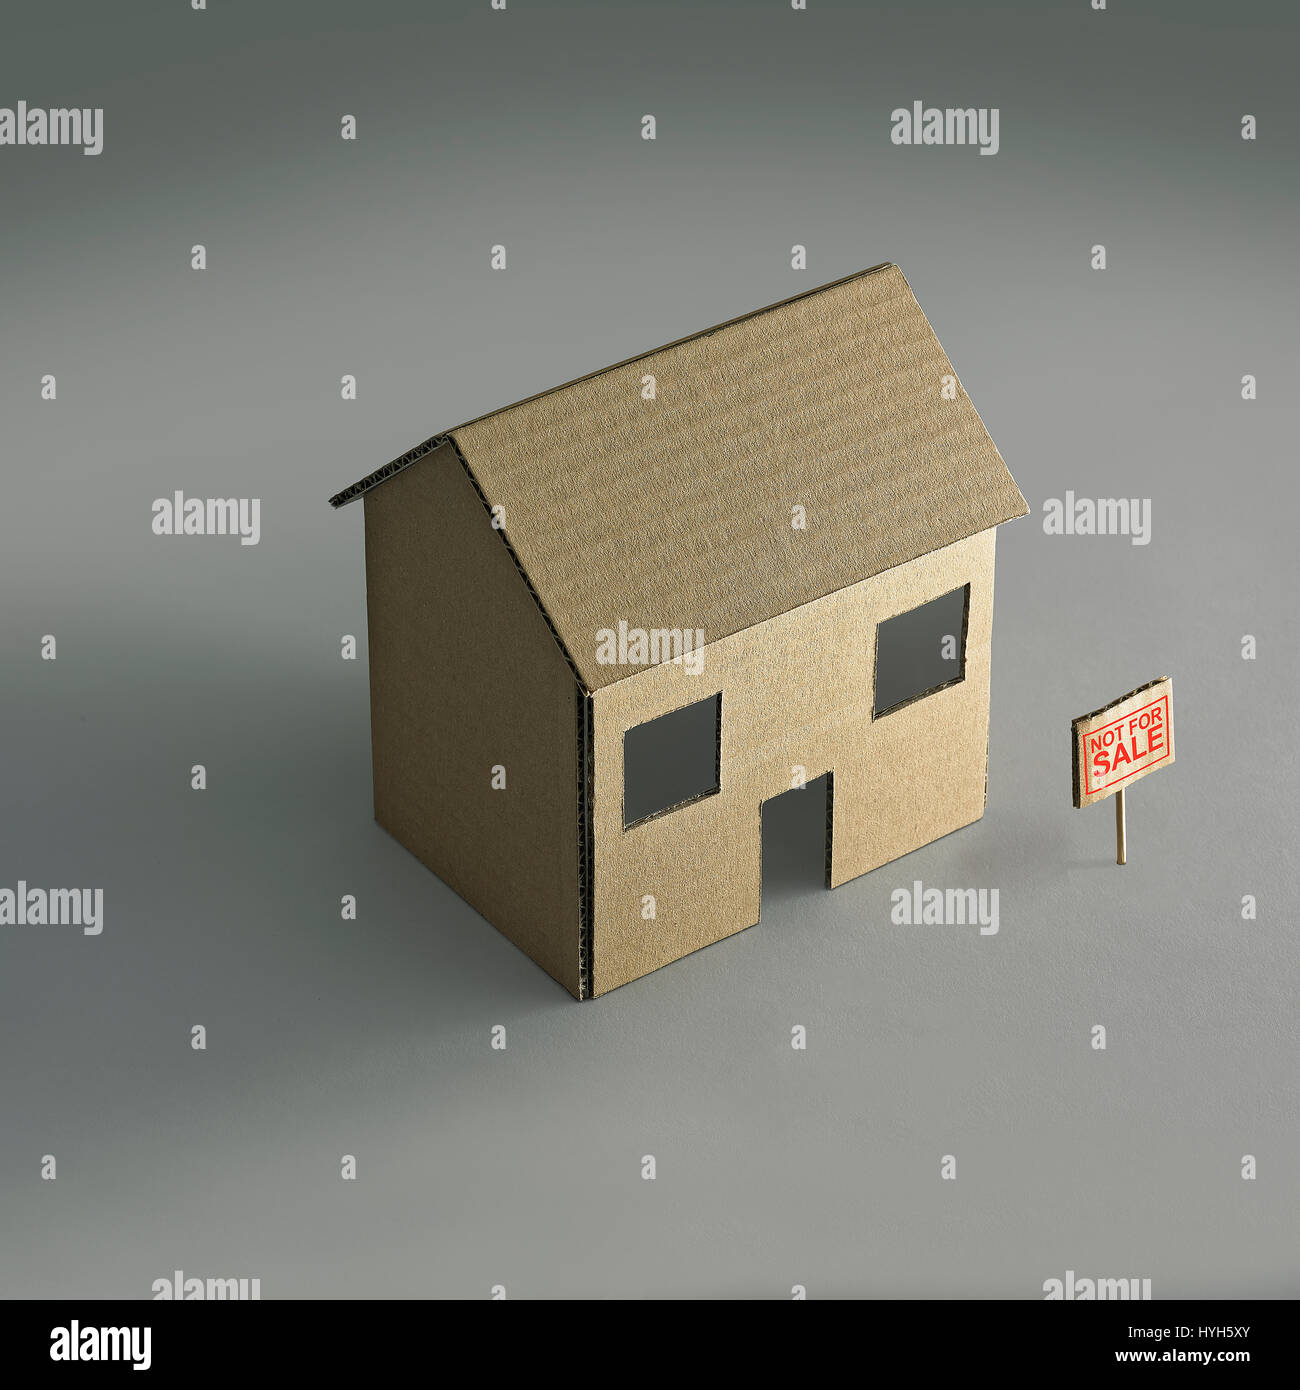 Cardboard House not for sale - Stock Image